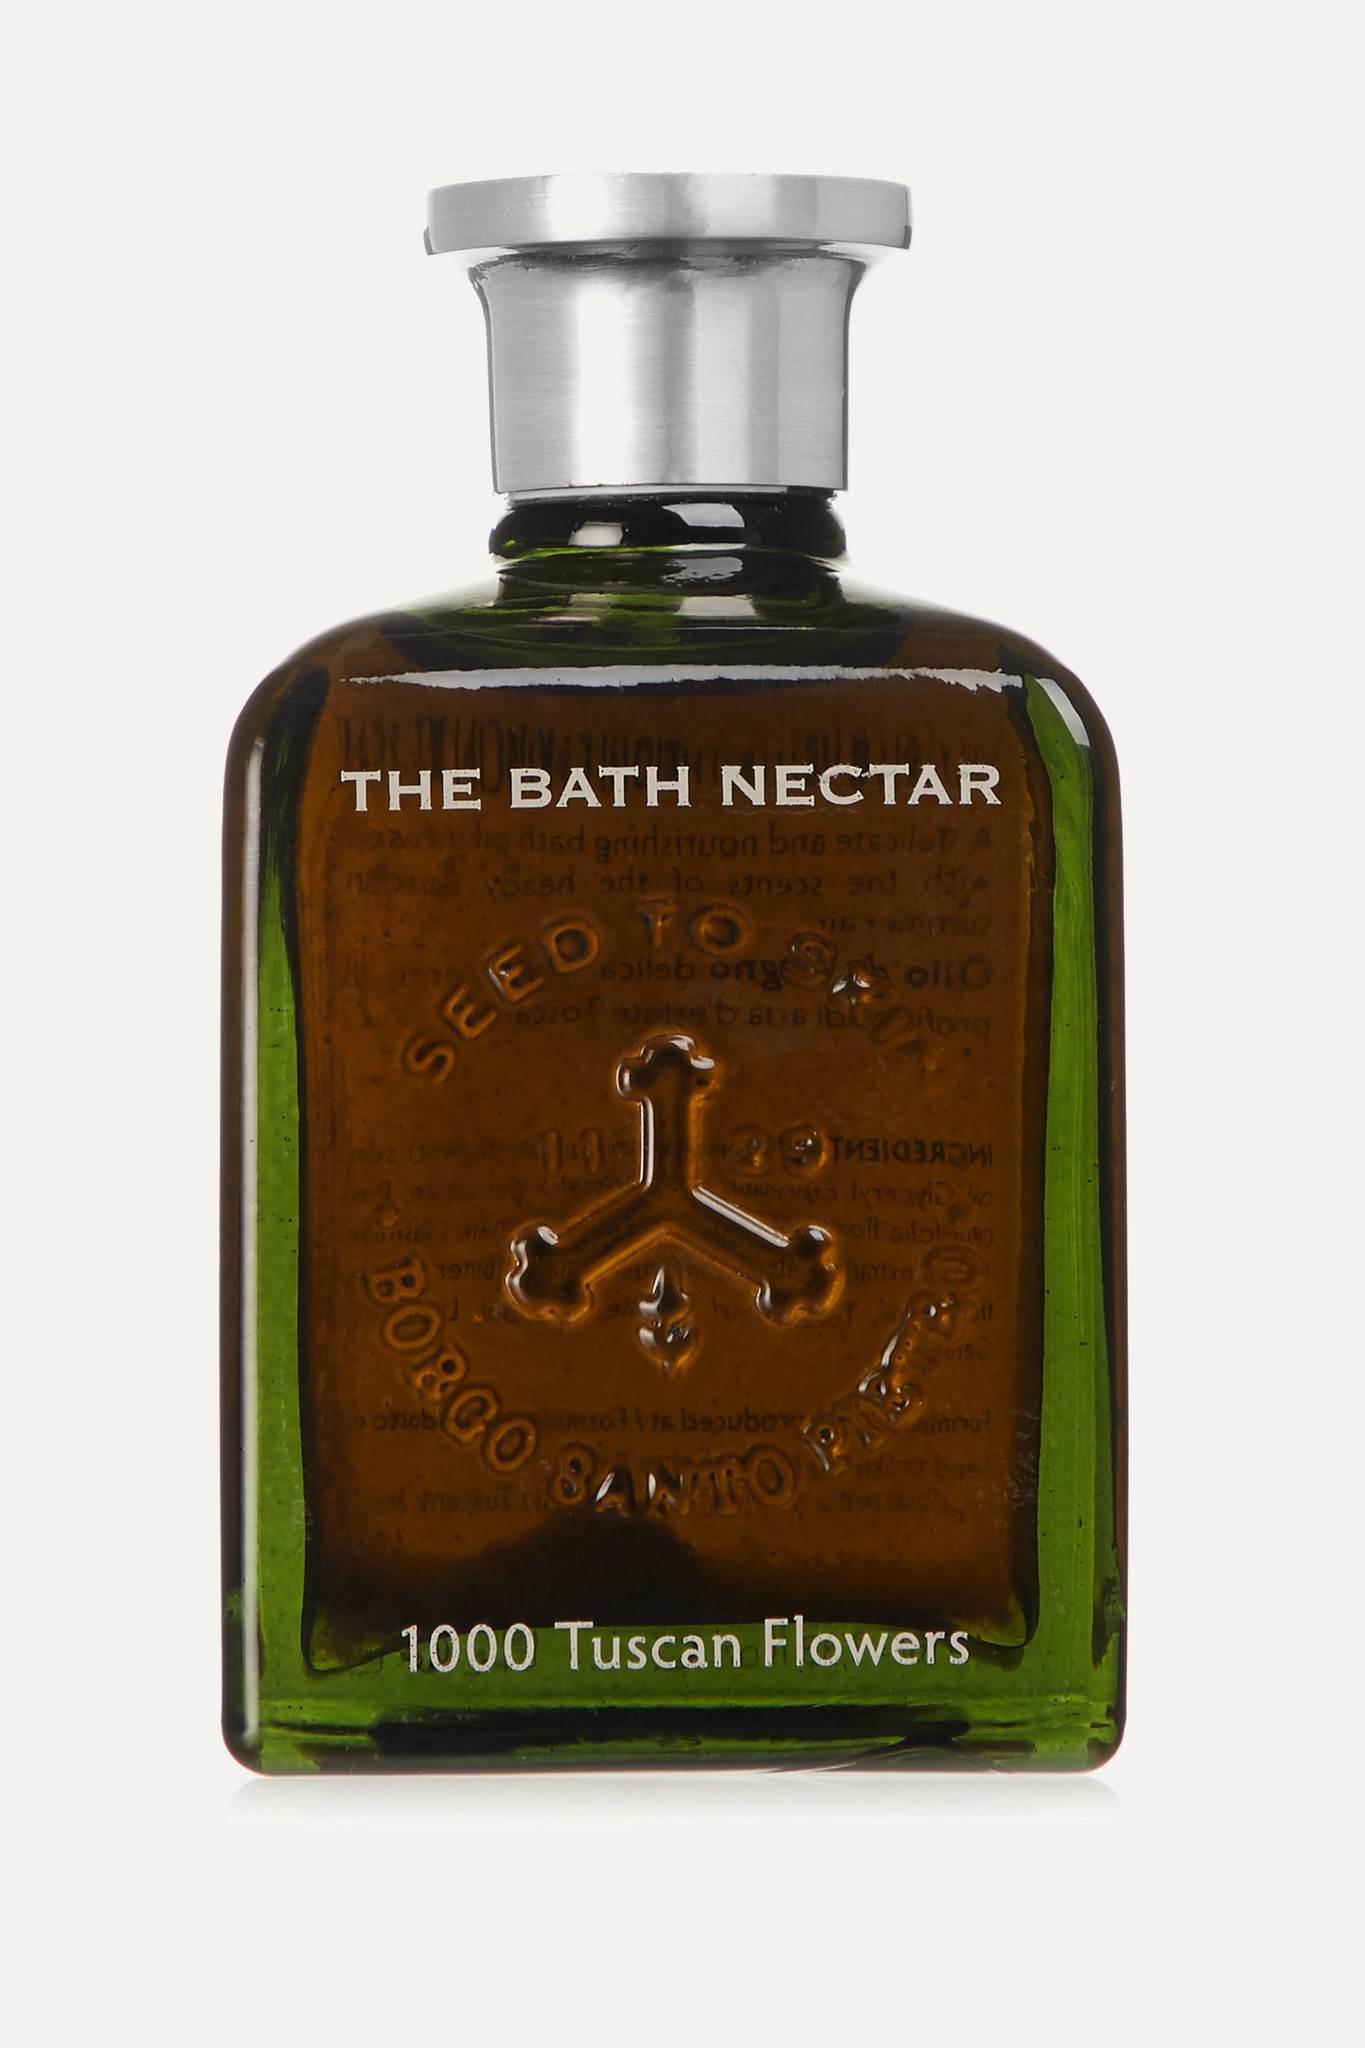 SEED TO SKIN - The Bath Nectar - 1000 Tuscan Flowers, 100ml - one size